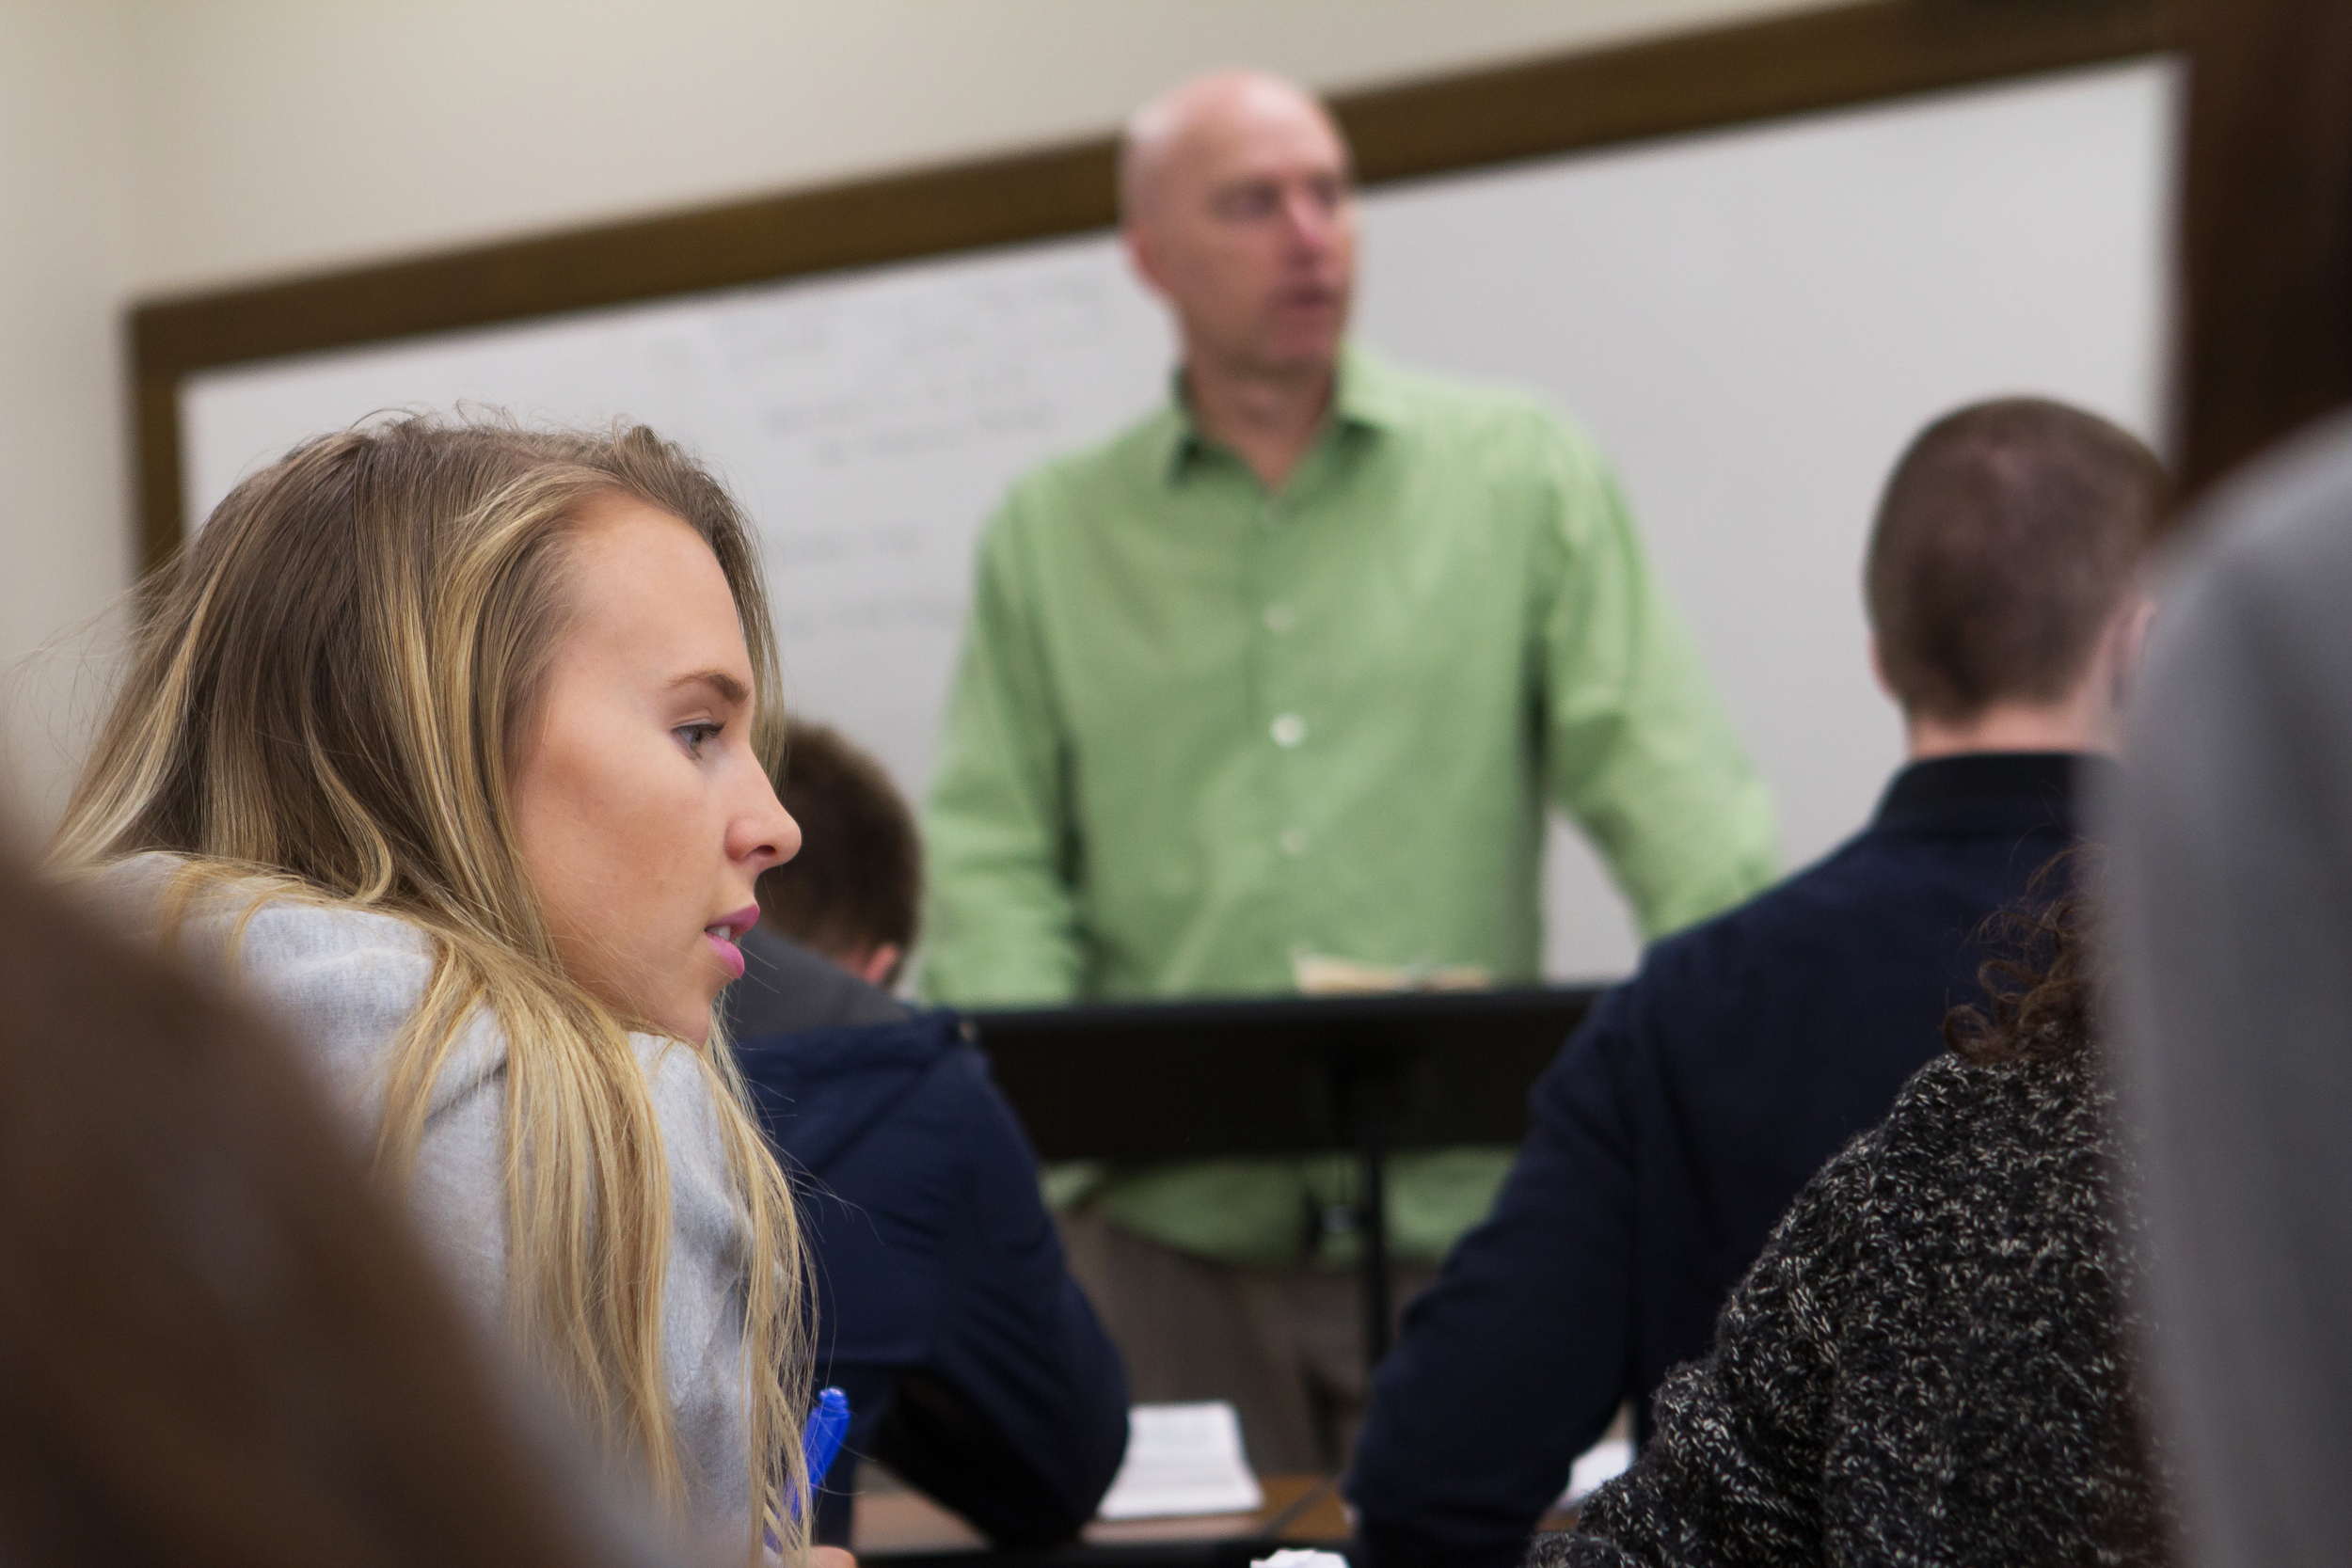 Mr. Steven Undseth's Bible class provides students with a framework for critical thinking helping students better understand God's word.